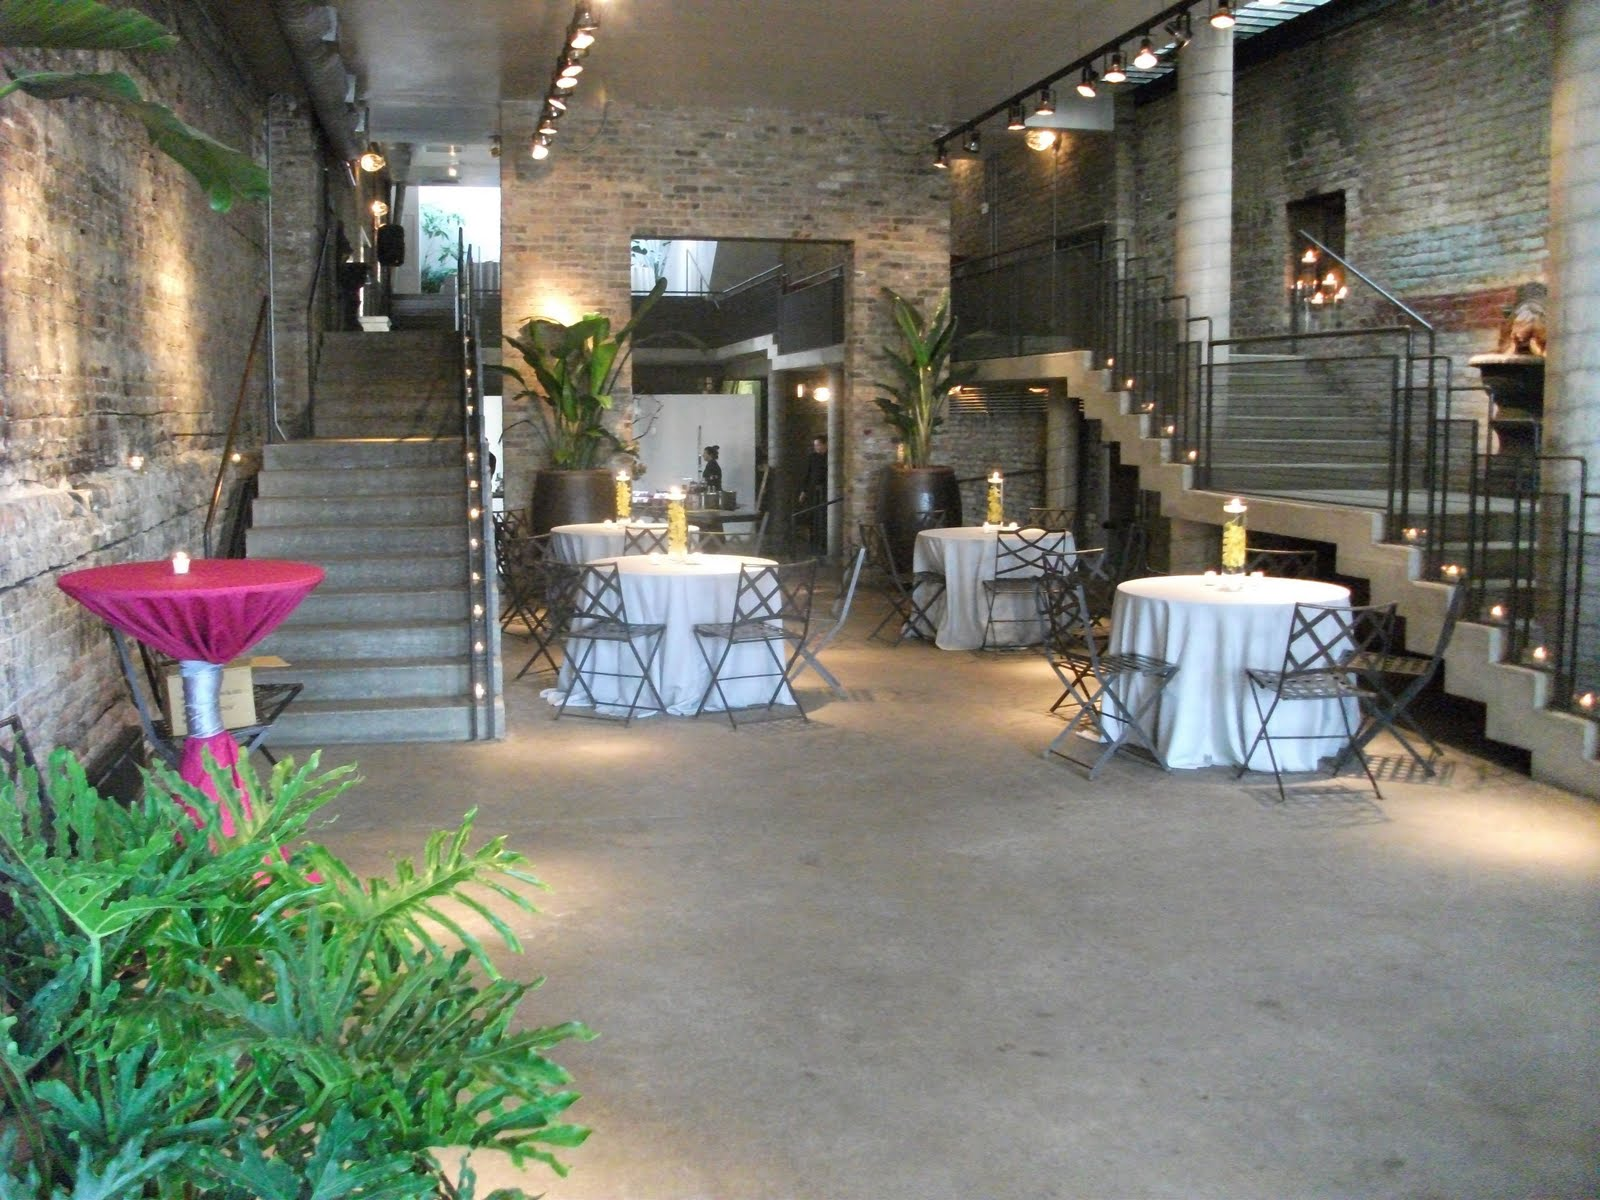 Liven It Up Events| Wedding Planners & Event Planners Chicago